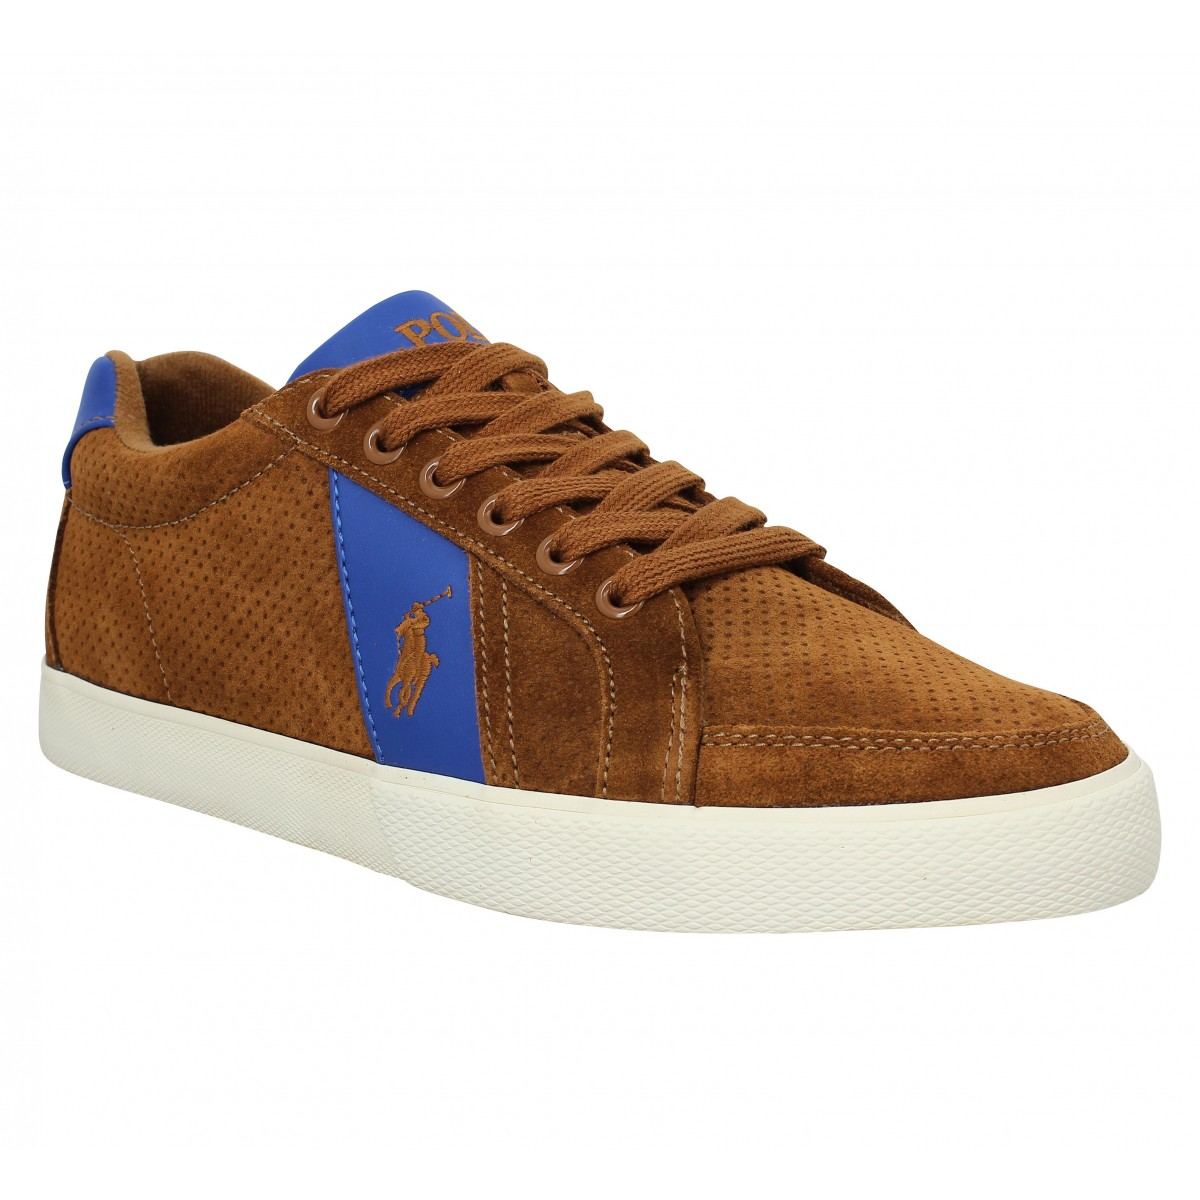 Baskets POLO RALPH LAUREN Hugh velours Cognac